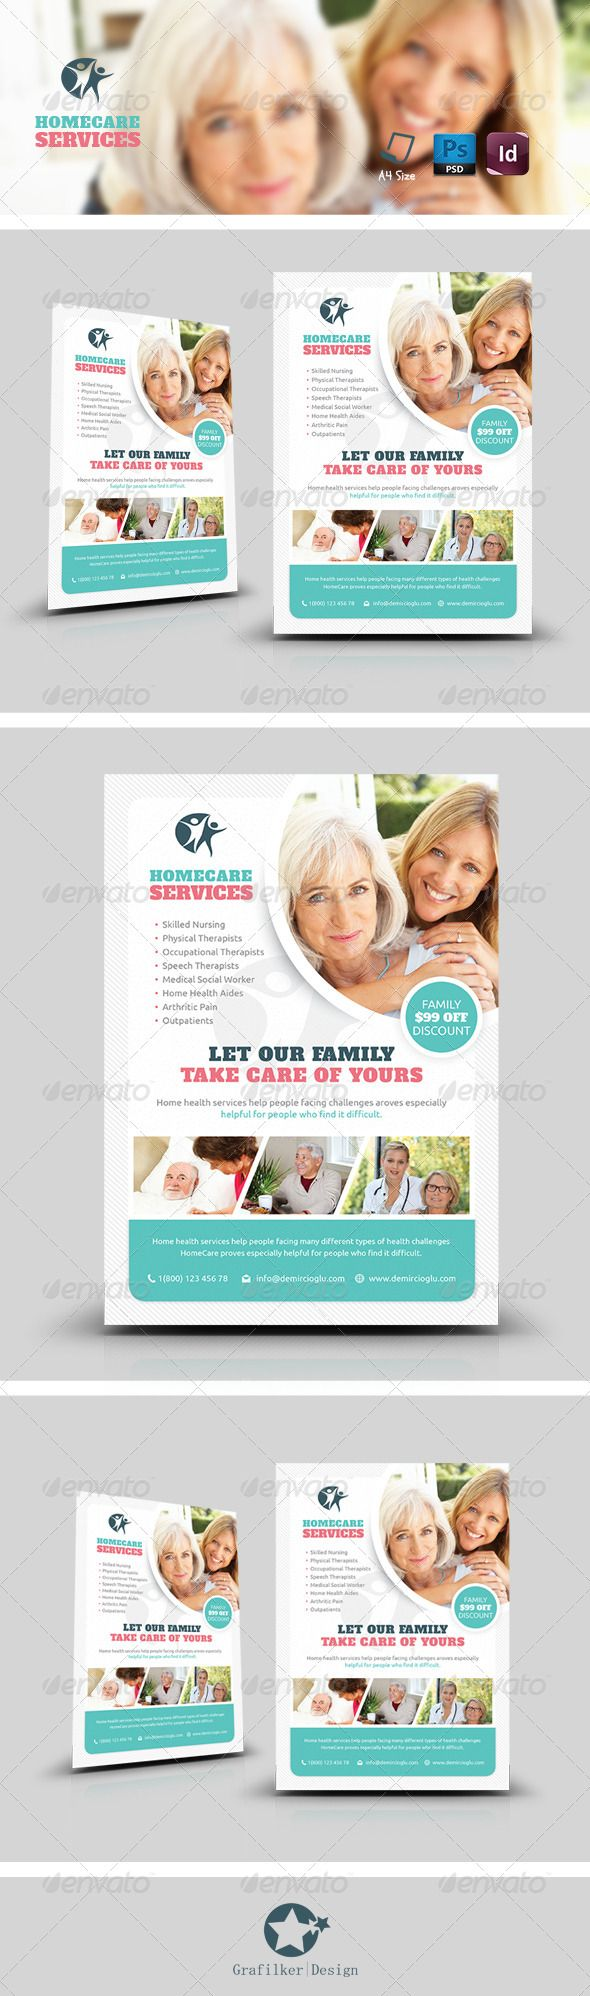 21 best images about medical flyer brochure on pinterest for Home care brochure template